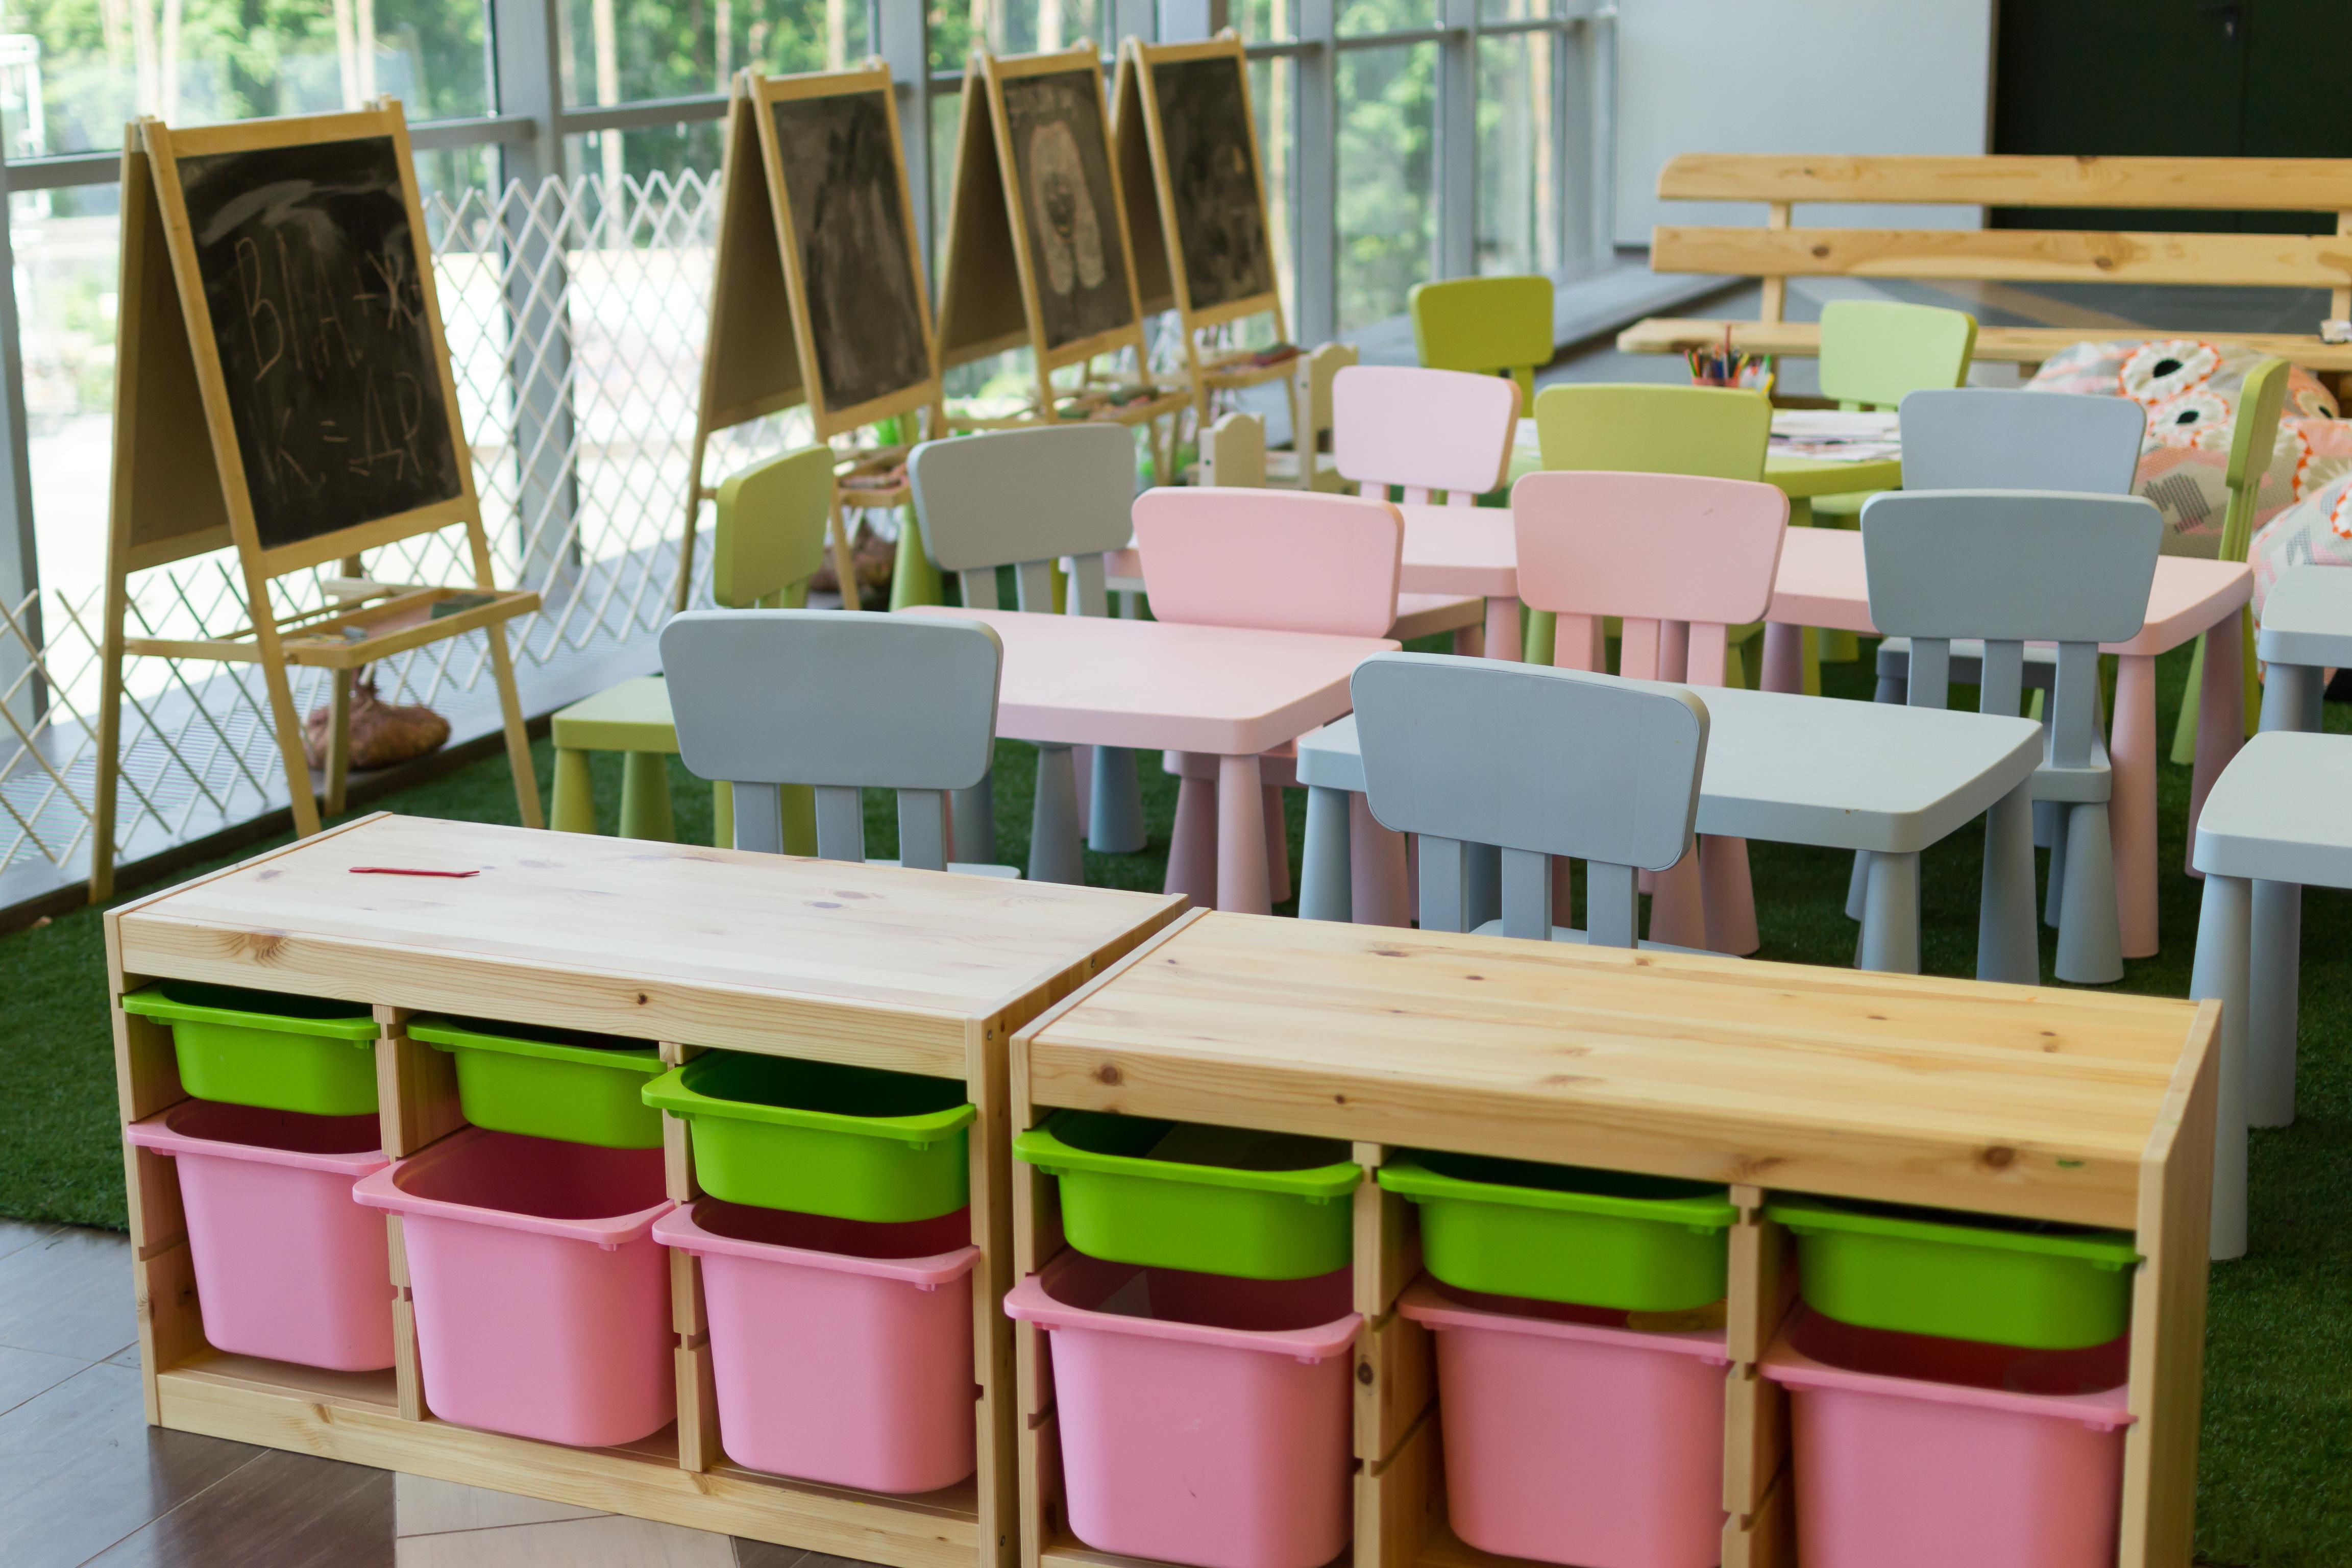 Montessori classroom materials